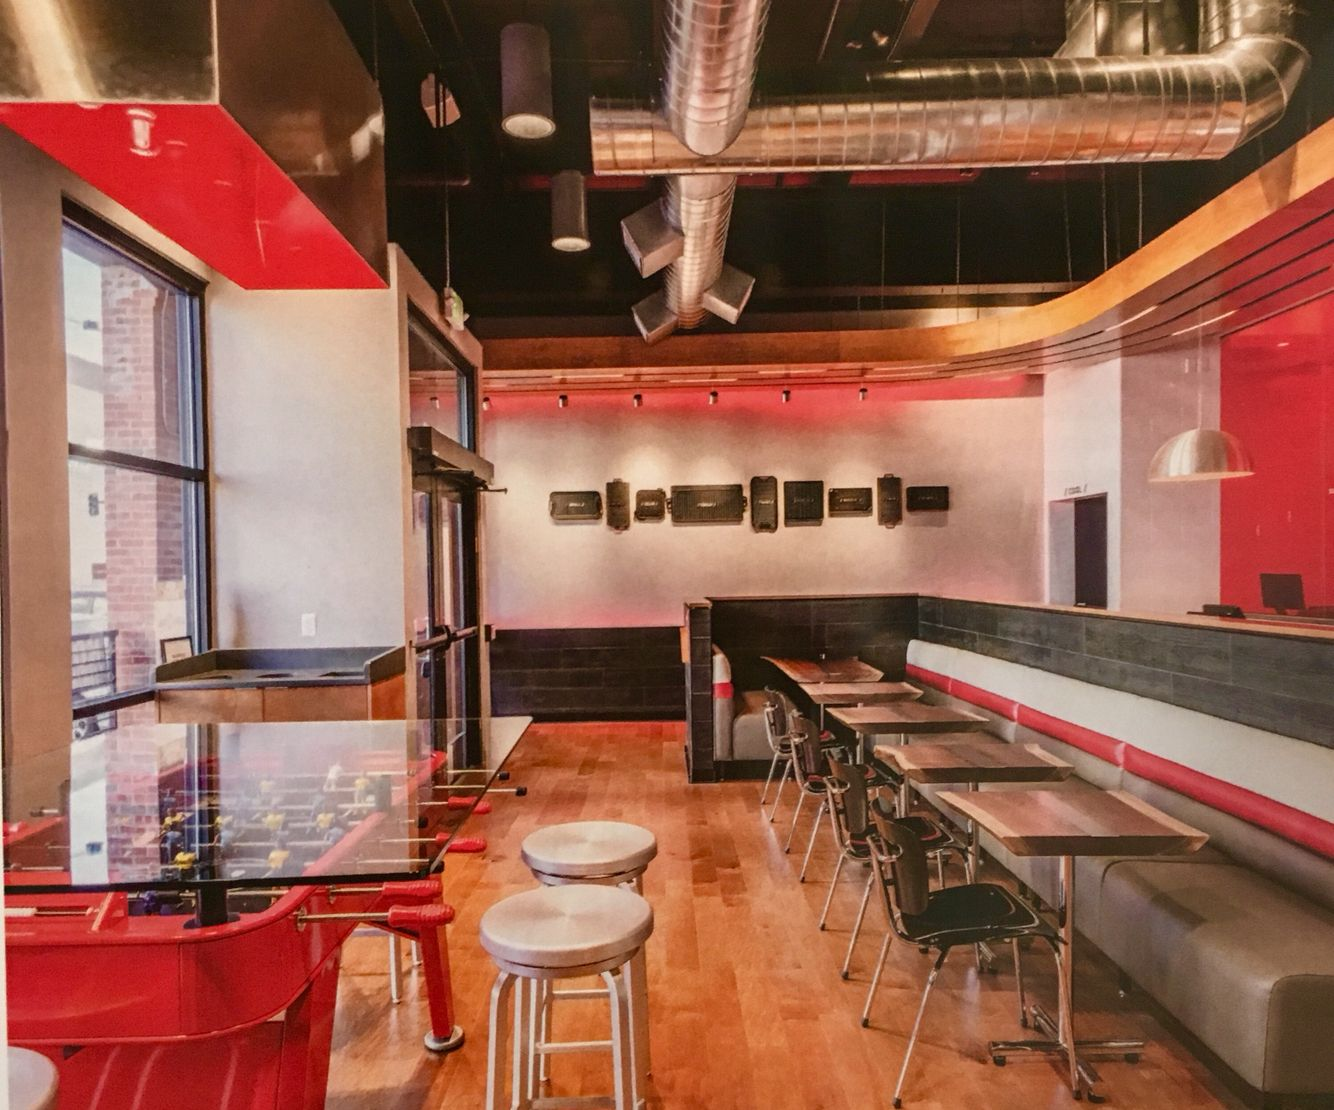 Quiznos Restaurant Design In Denver